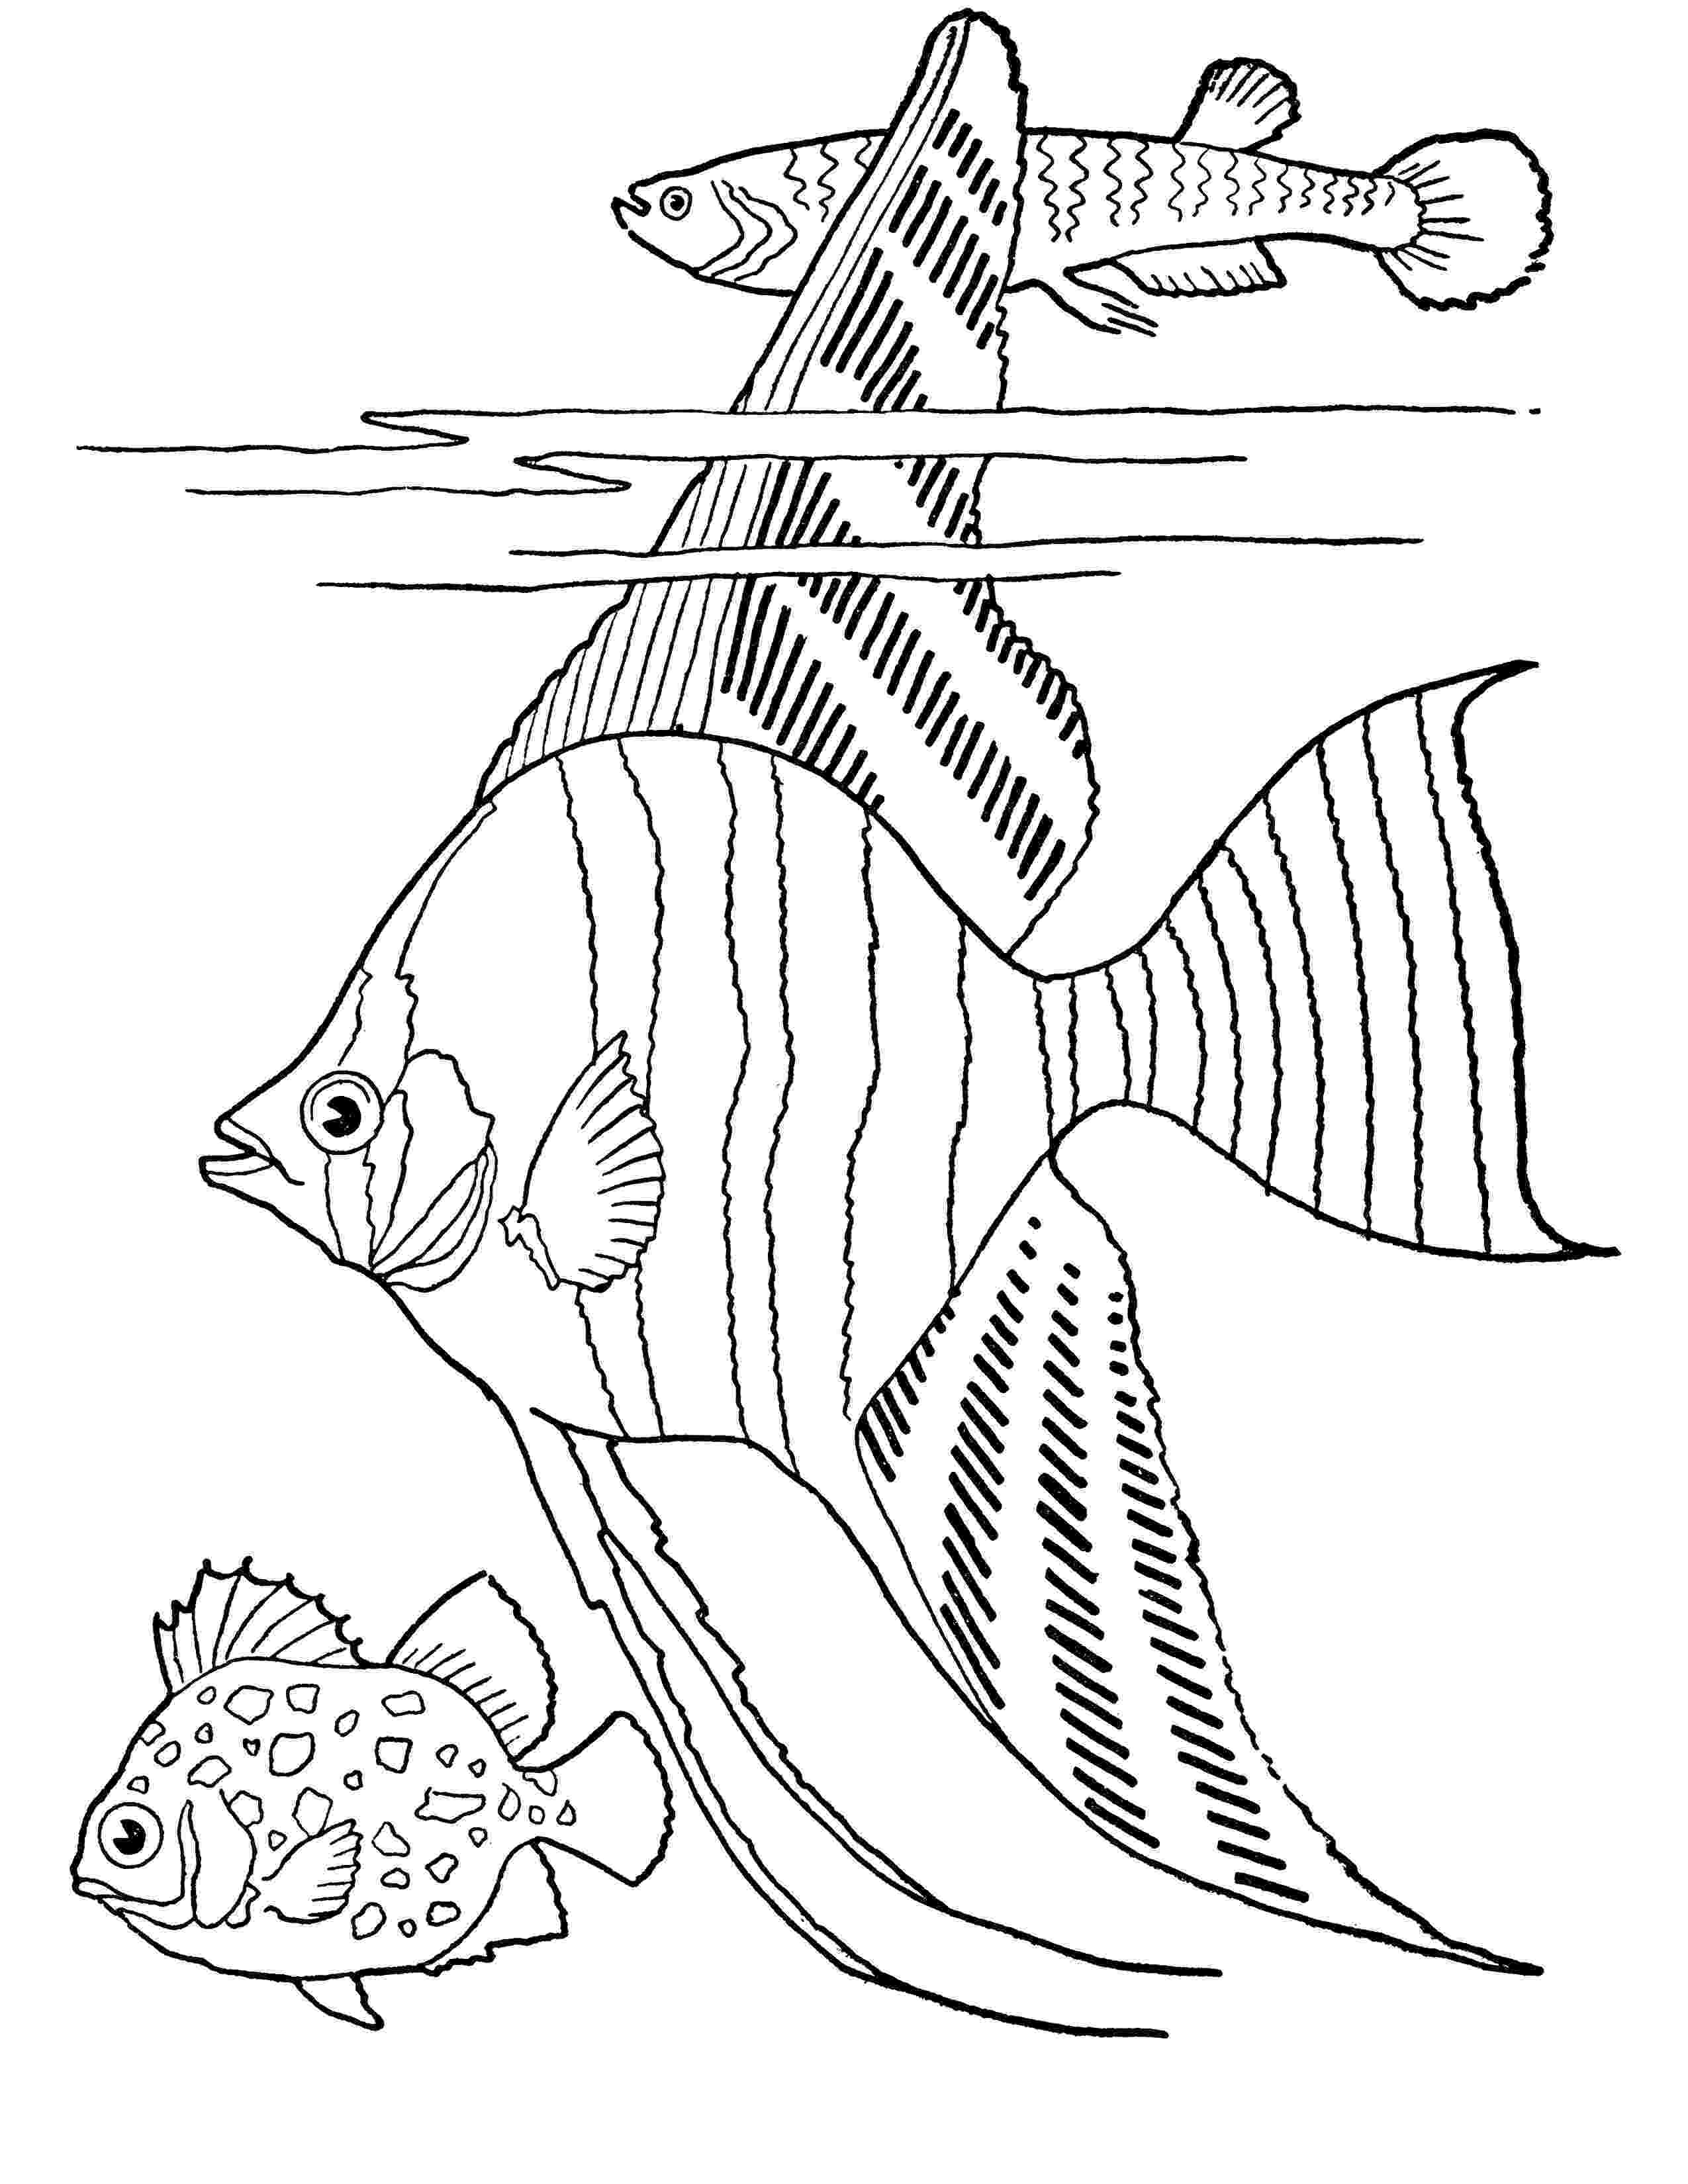 colouring pages for adults print free printable adult coloring page tropical fish the colouring for adults pages print